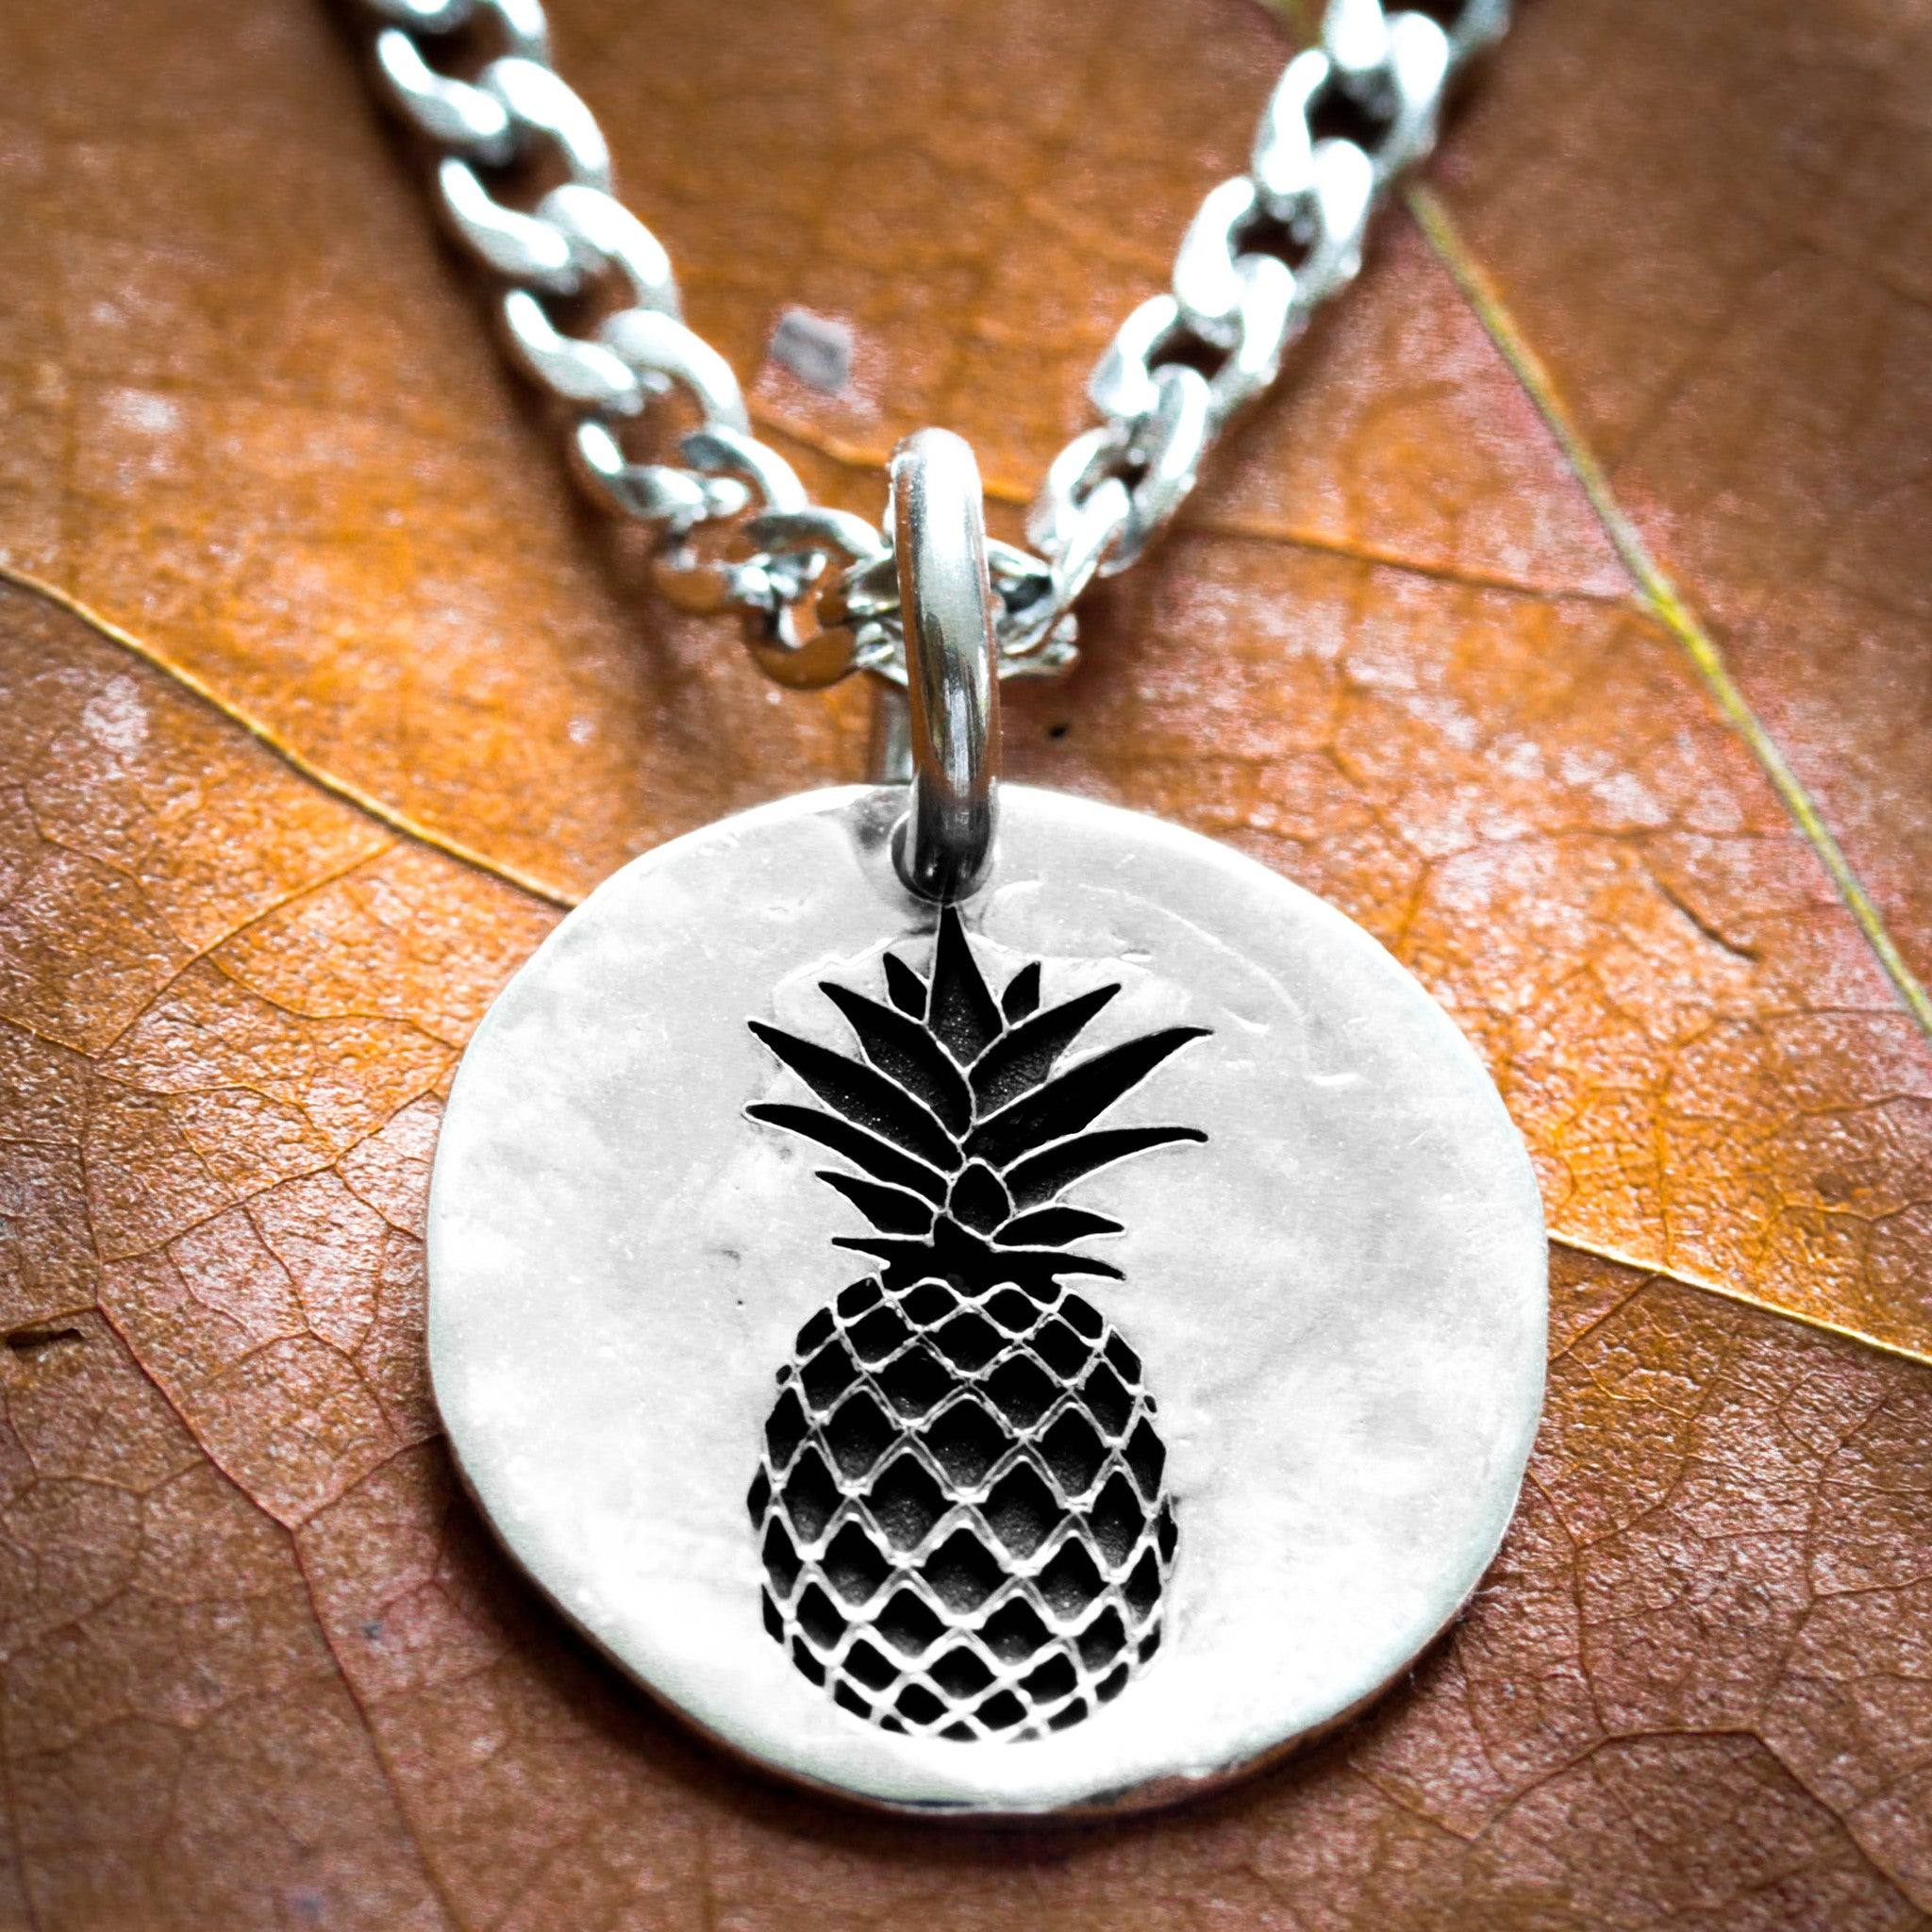 pineapple hala photo jewelry handstamped necklace necklaces handmade img